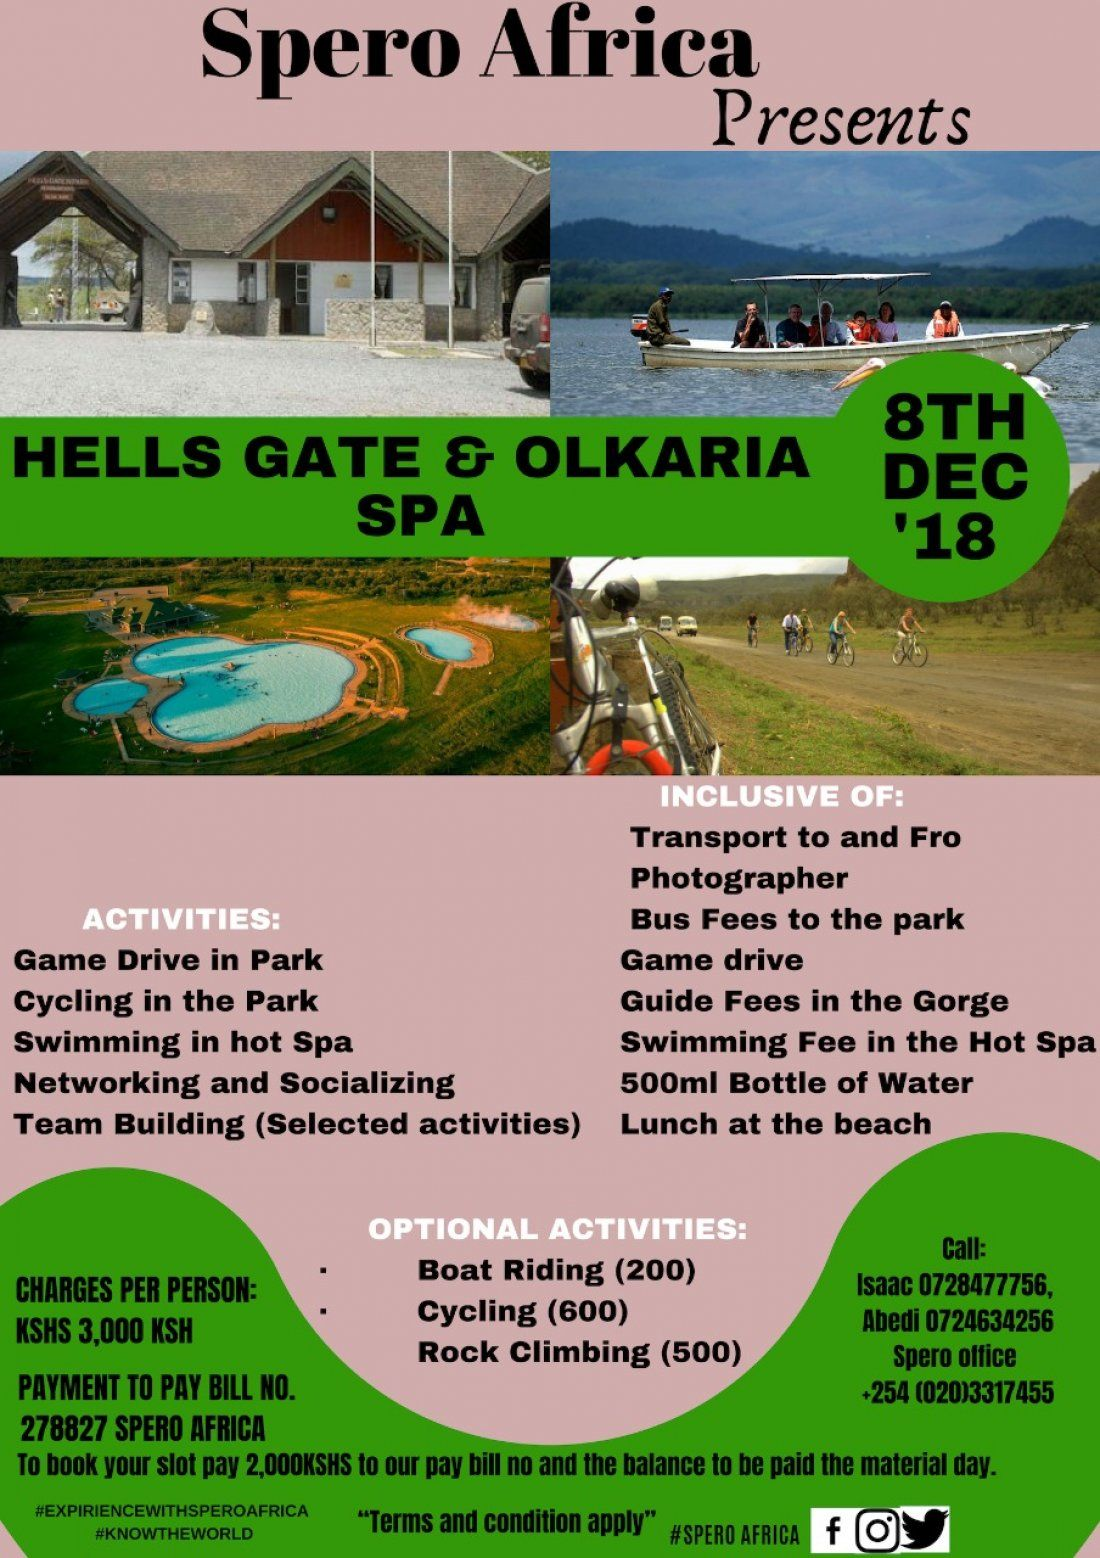 Hells Gate and Olkaria Spa